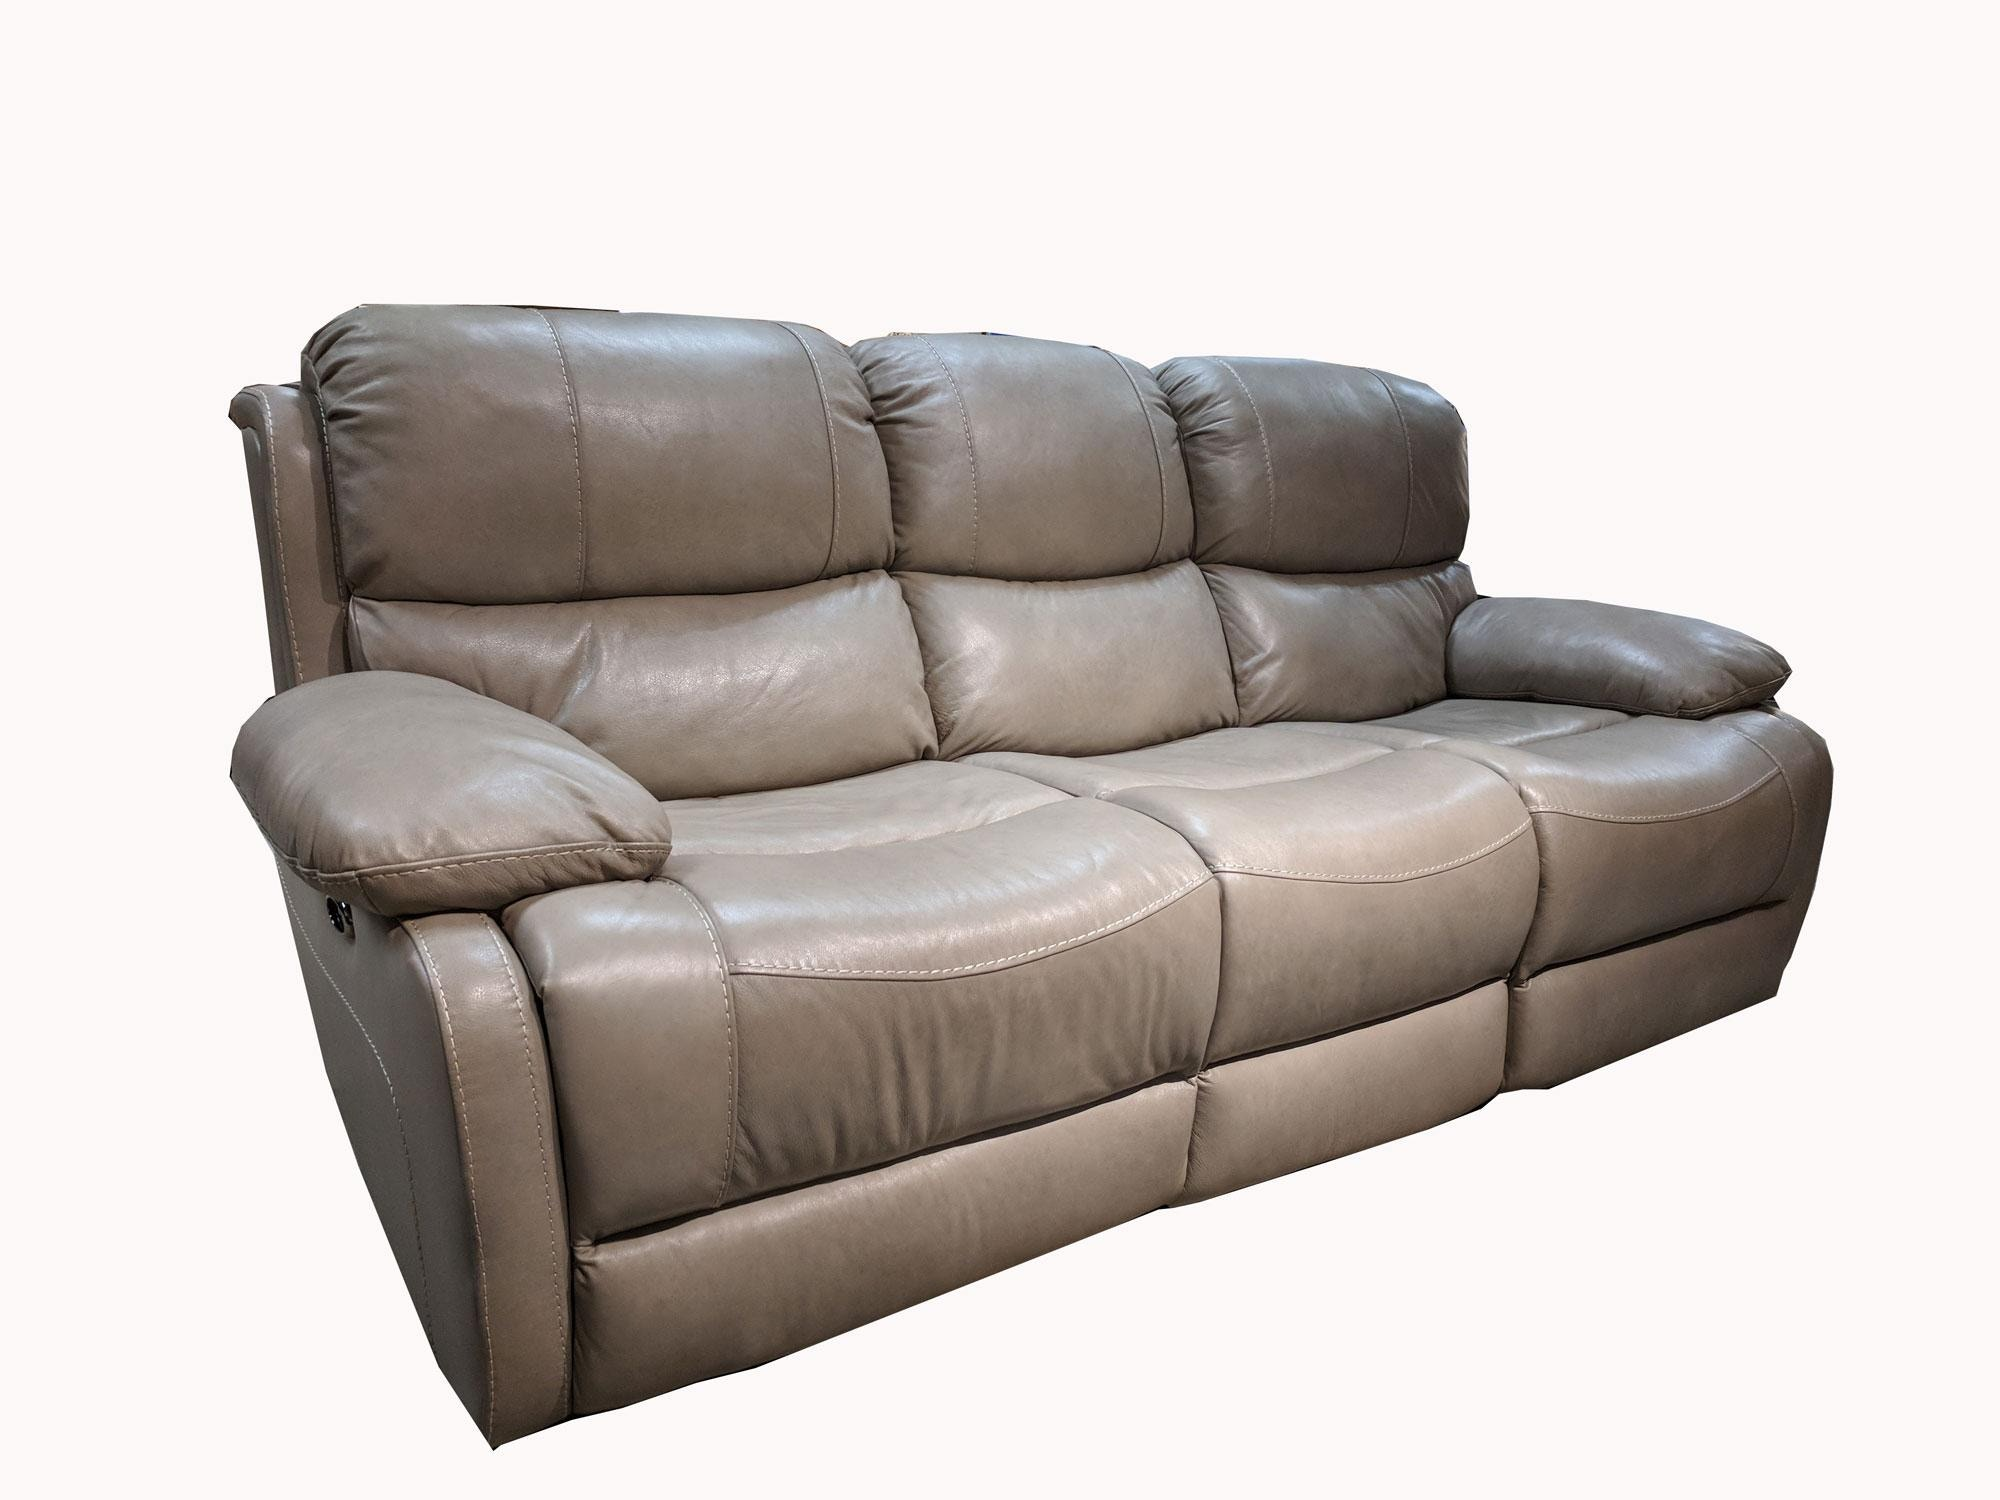 Corinthian Living Room Lucca Power Reclining Sofa 052766 Furniture